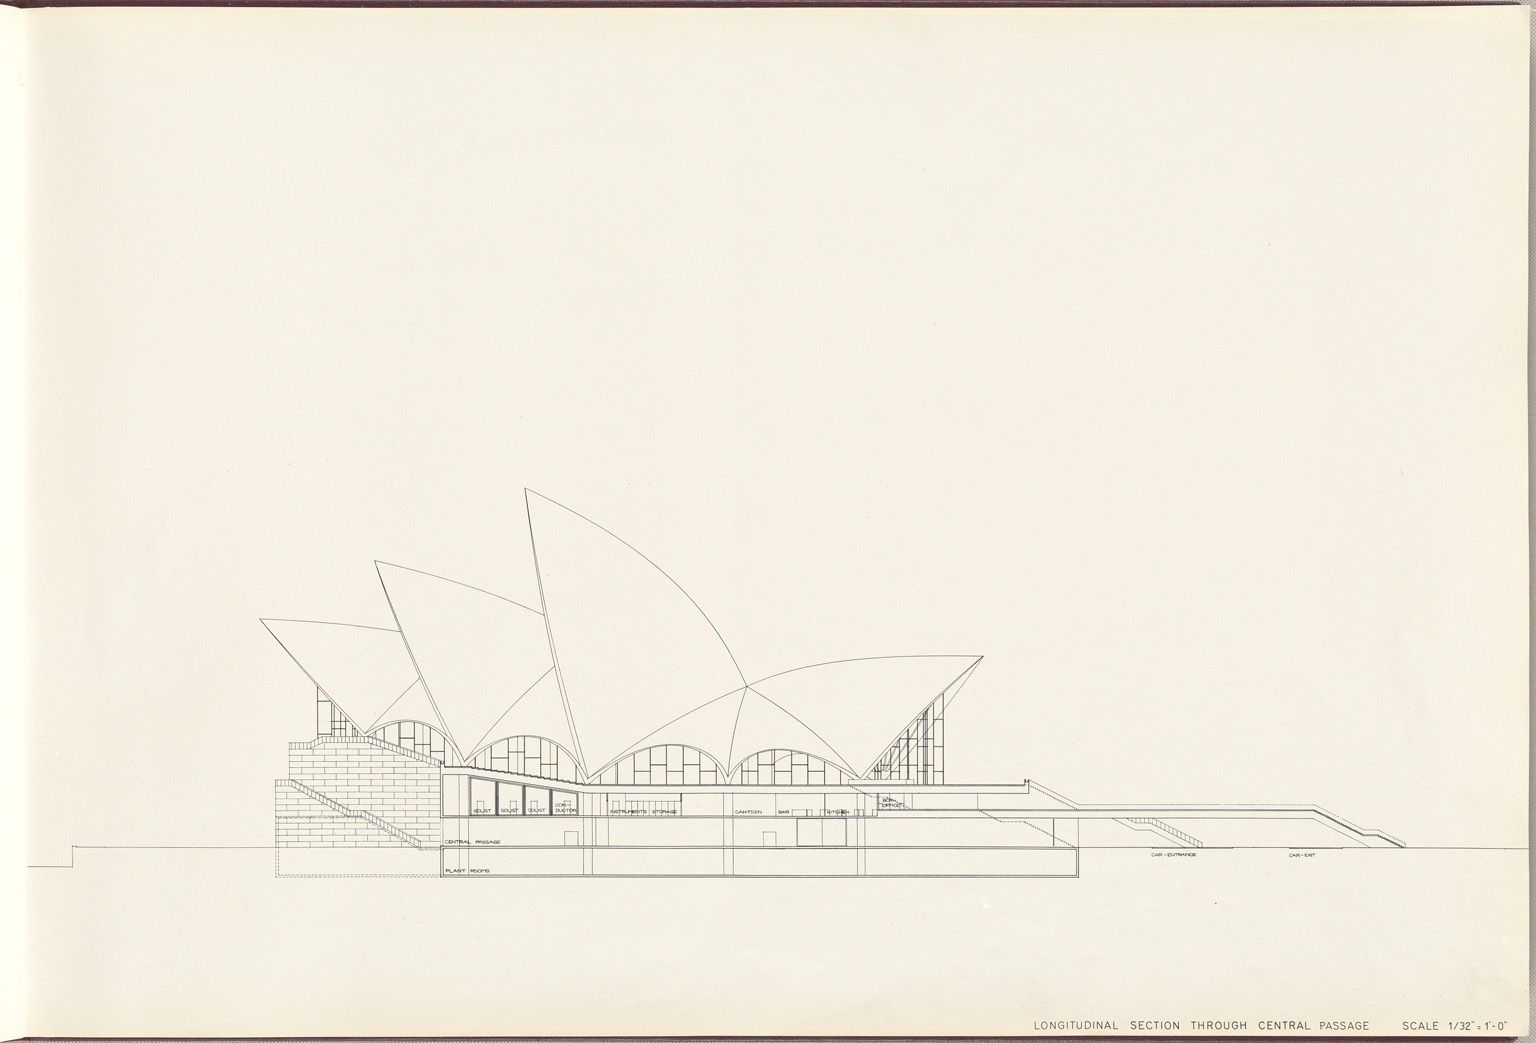 Longitudinal section through central passage Sydney Opera House Red Book